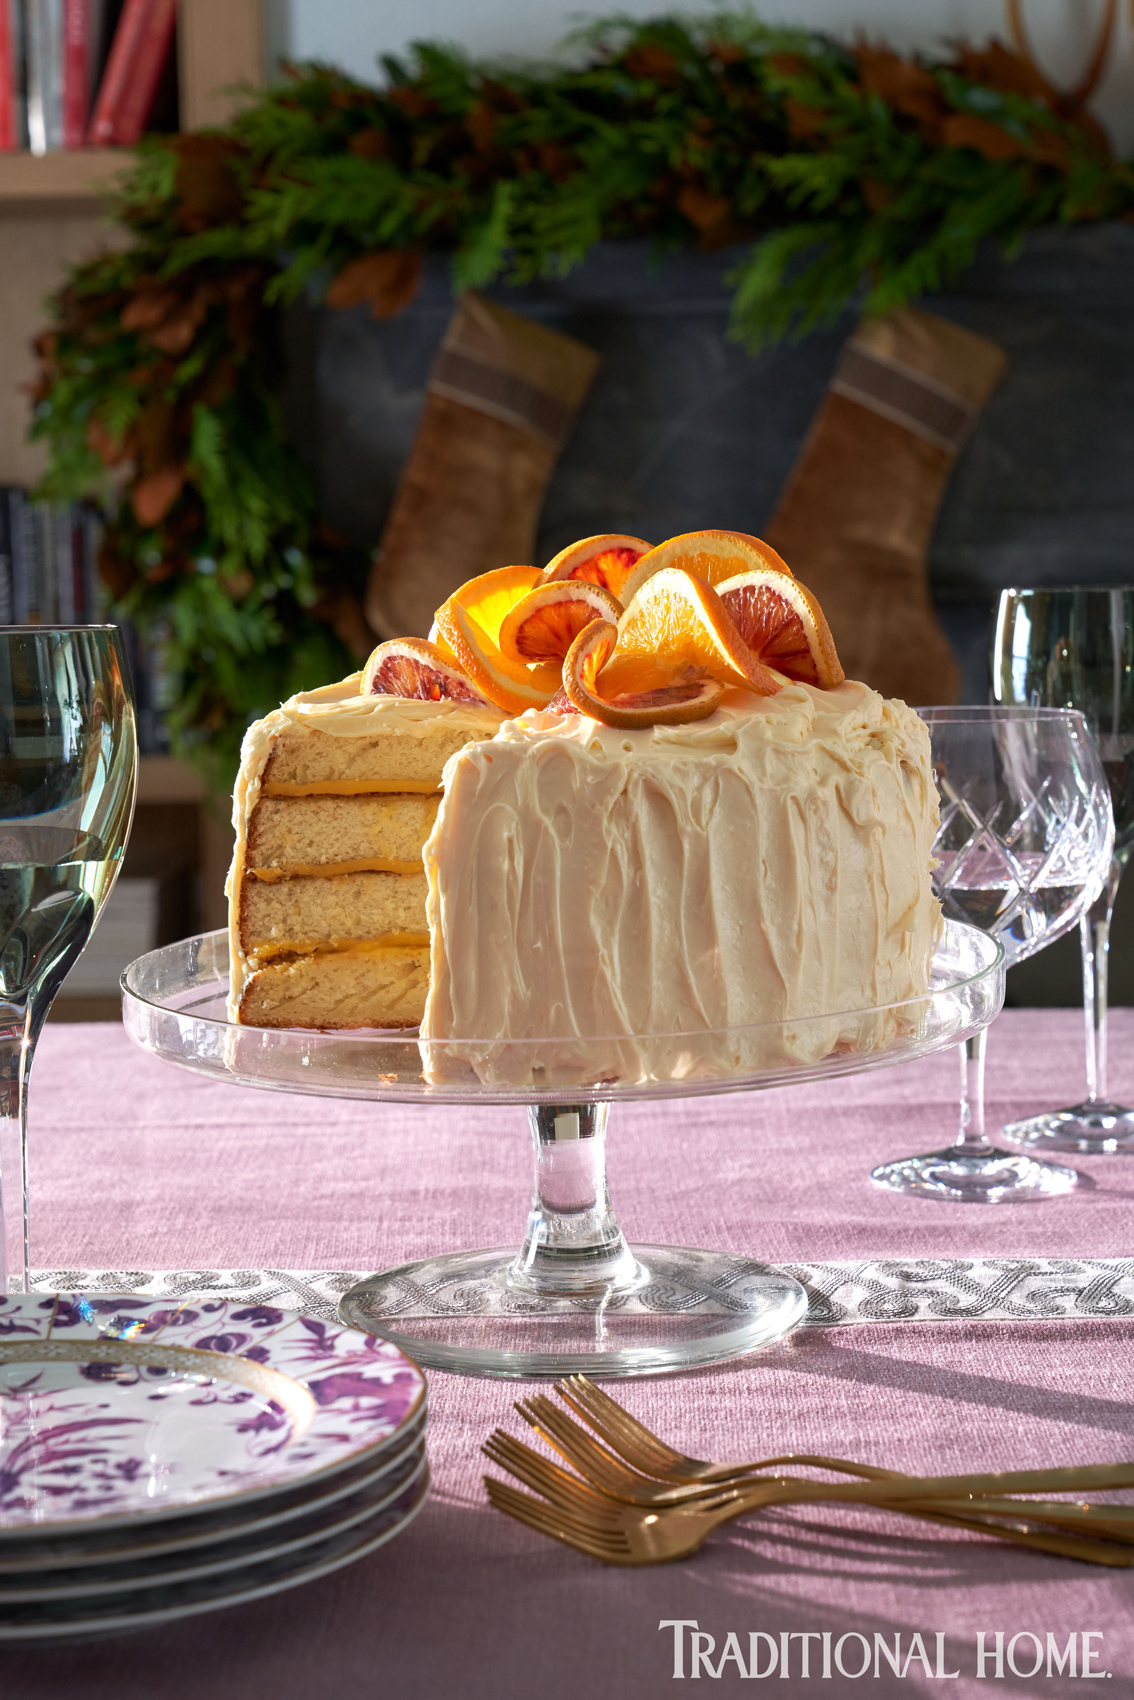 White Chocolate Layer Cake with Orange Curd